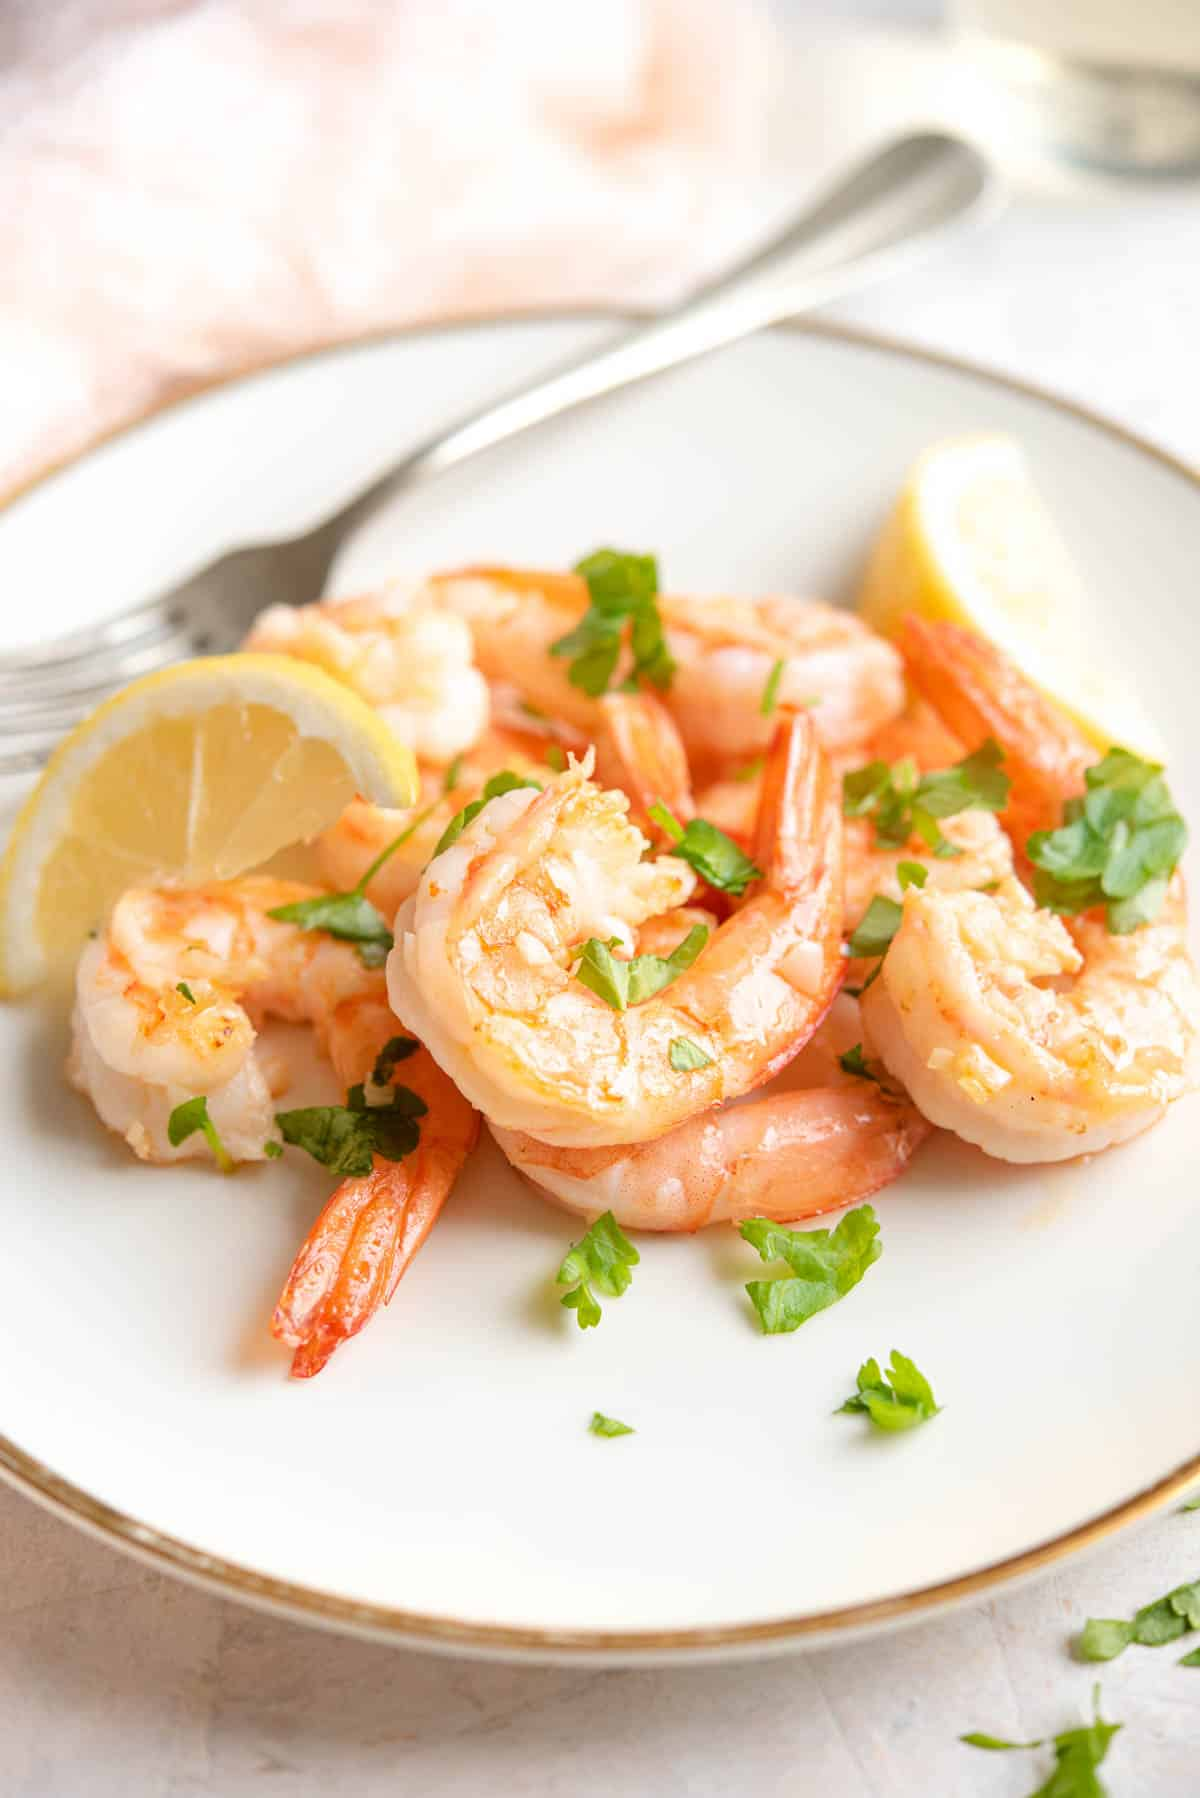 A side shot of sauteed shrimp on a plate with parsley